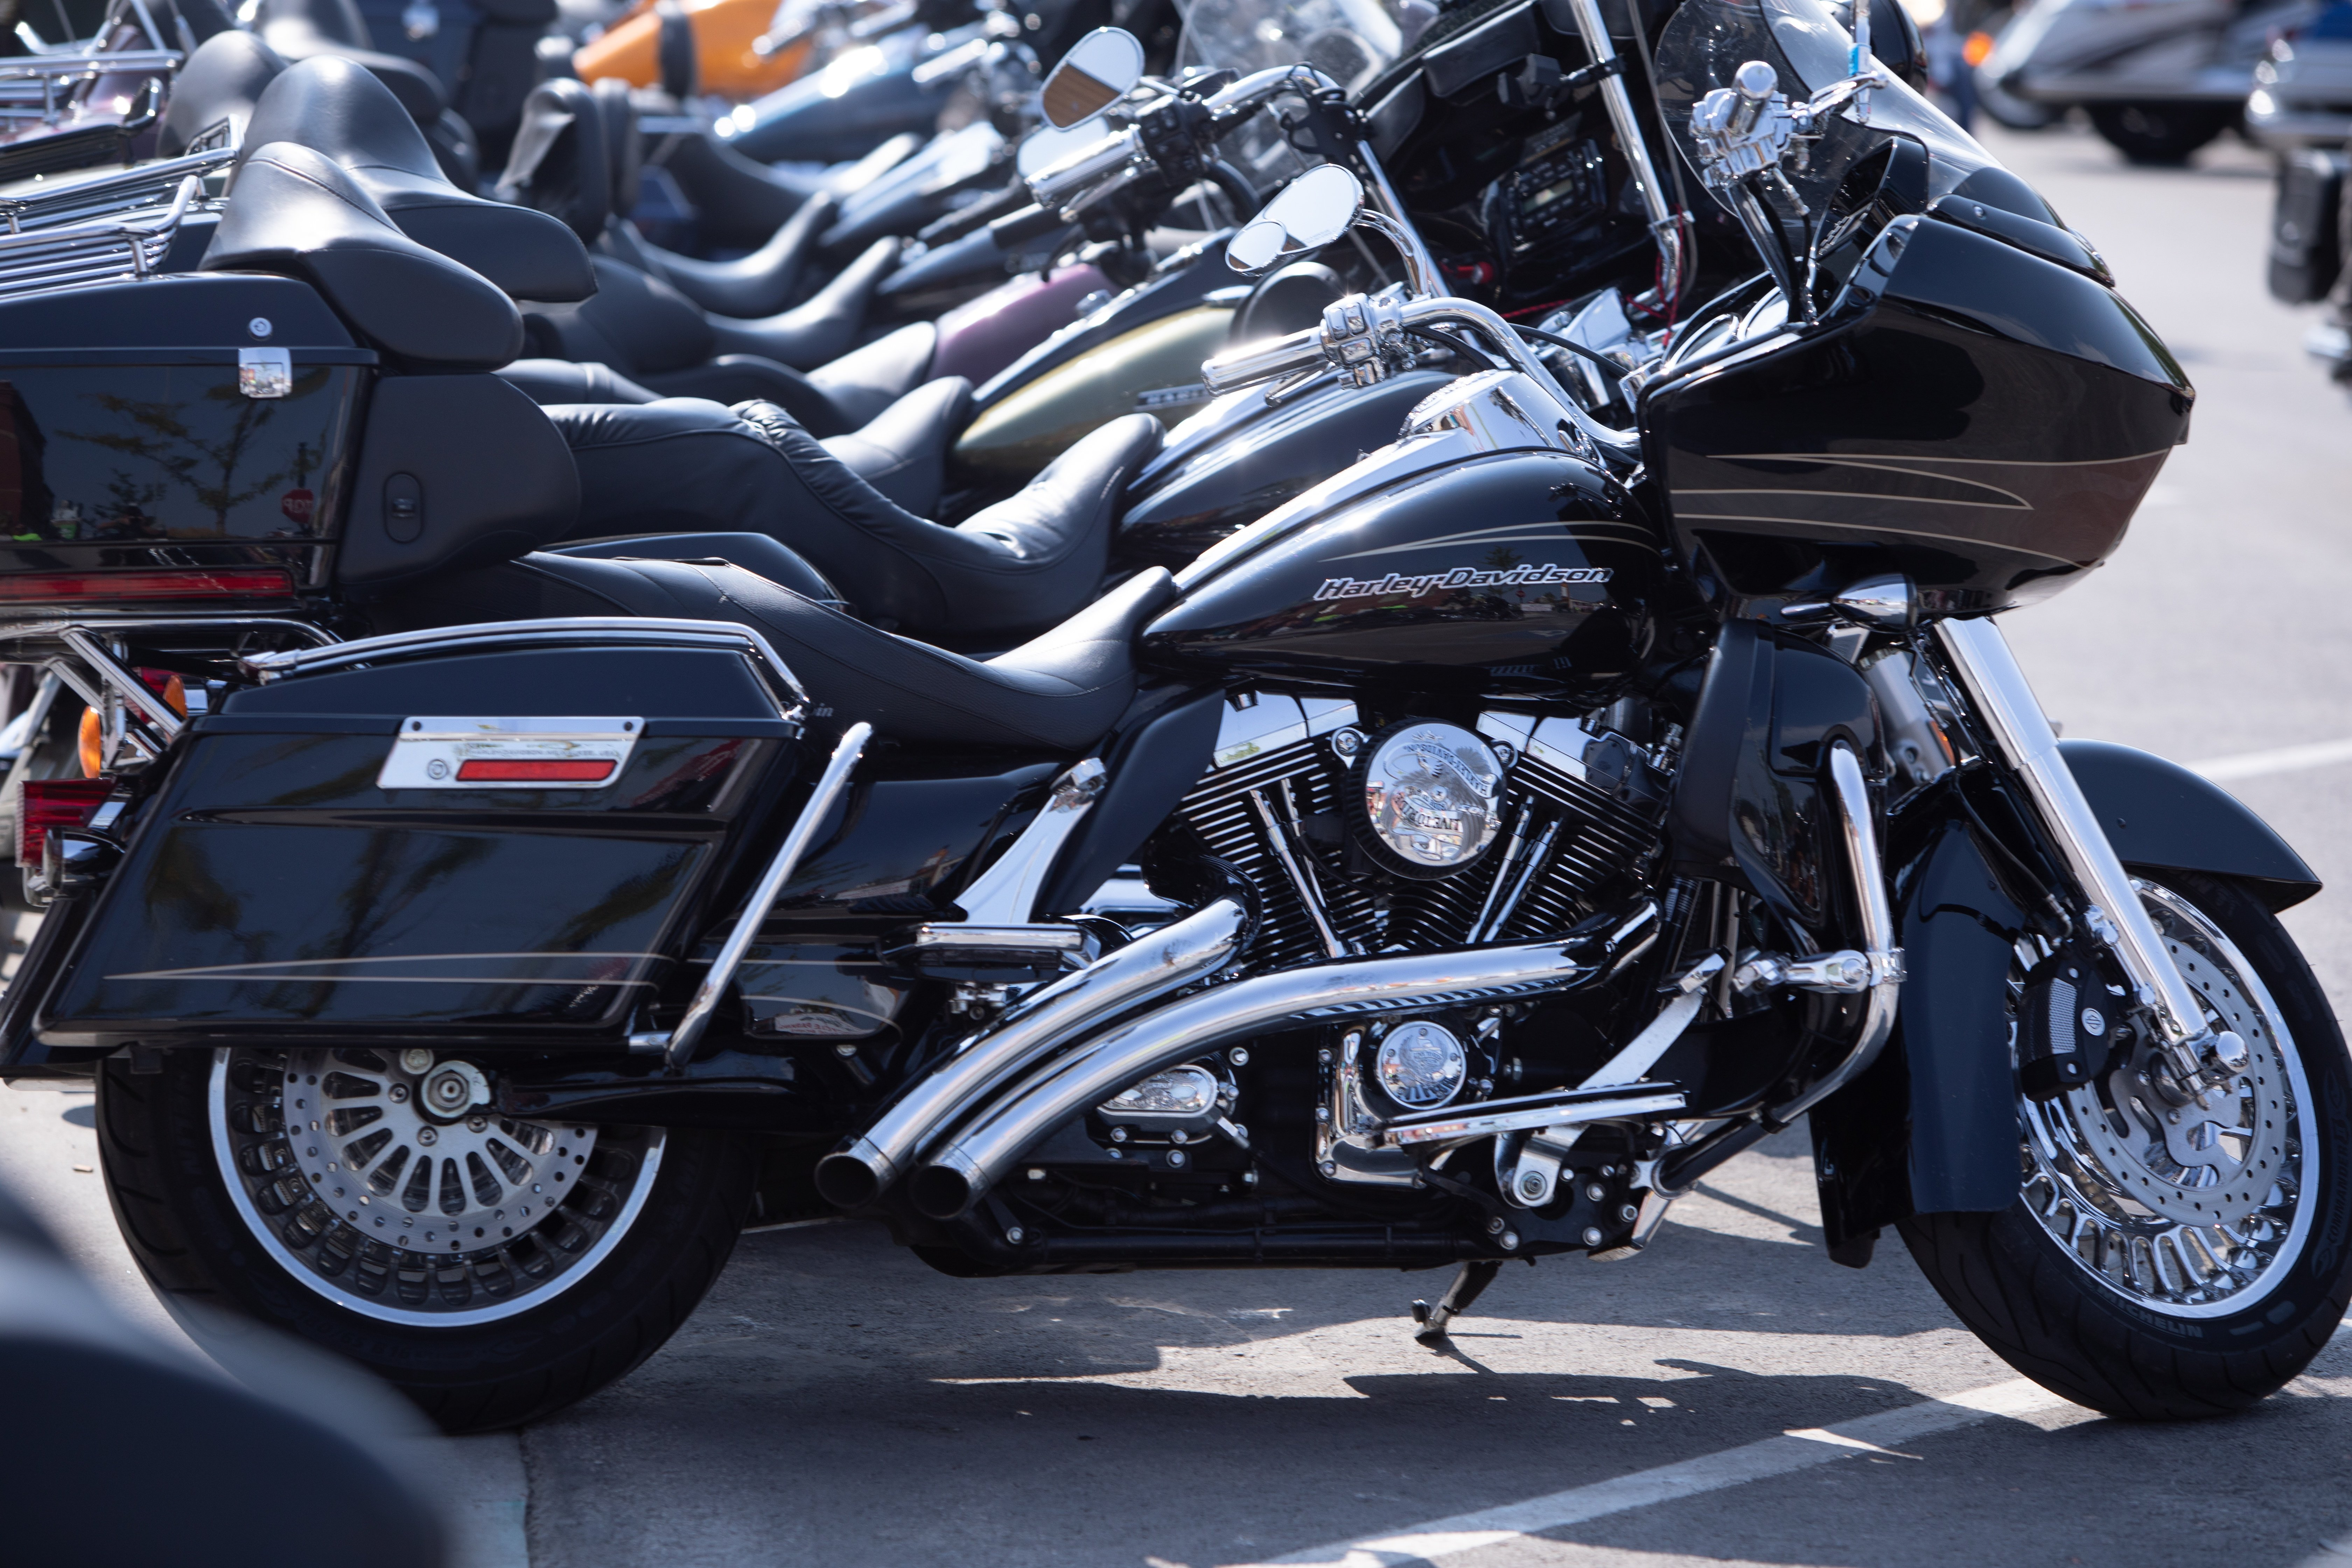 We'll give cash for your Harley. Sell your Harley the easy way!